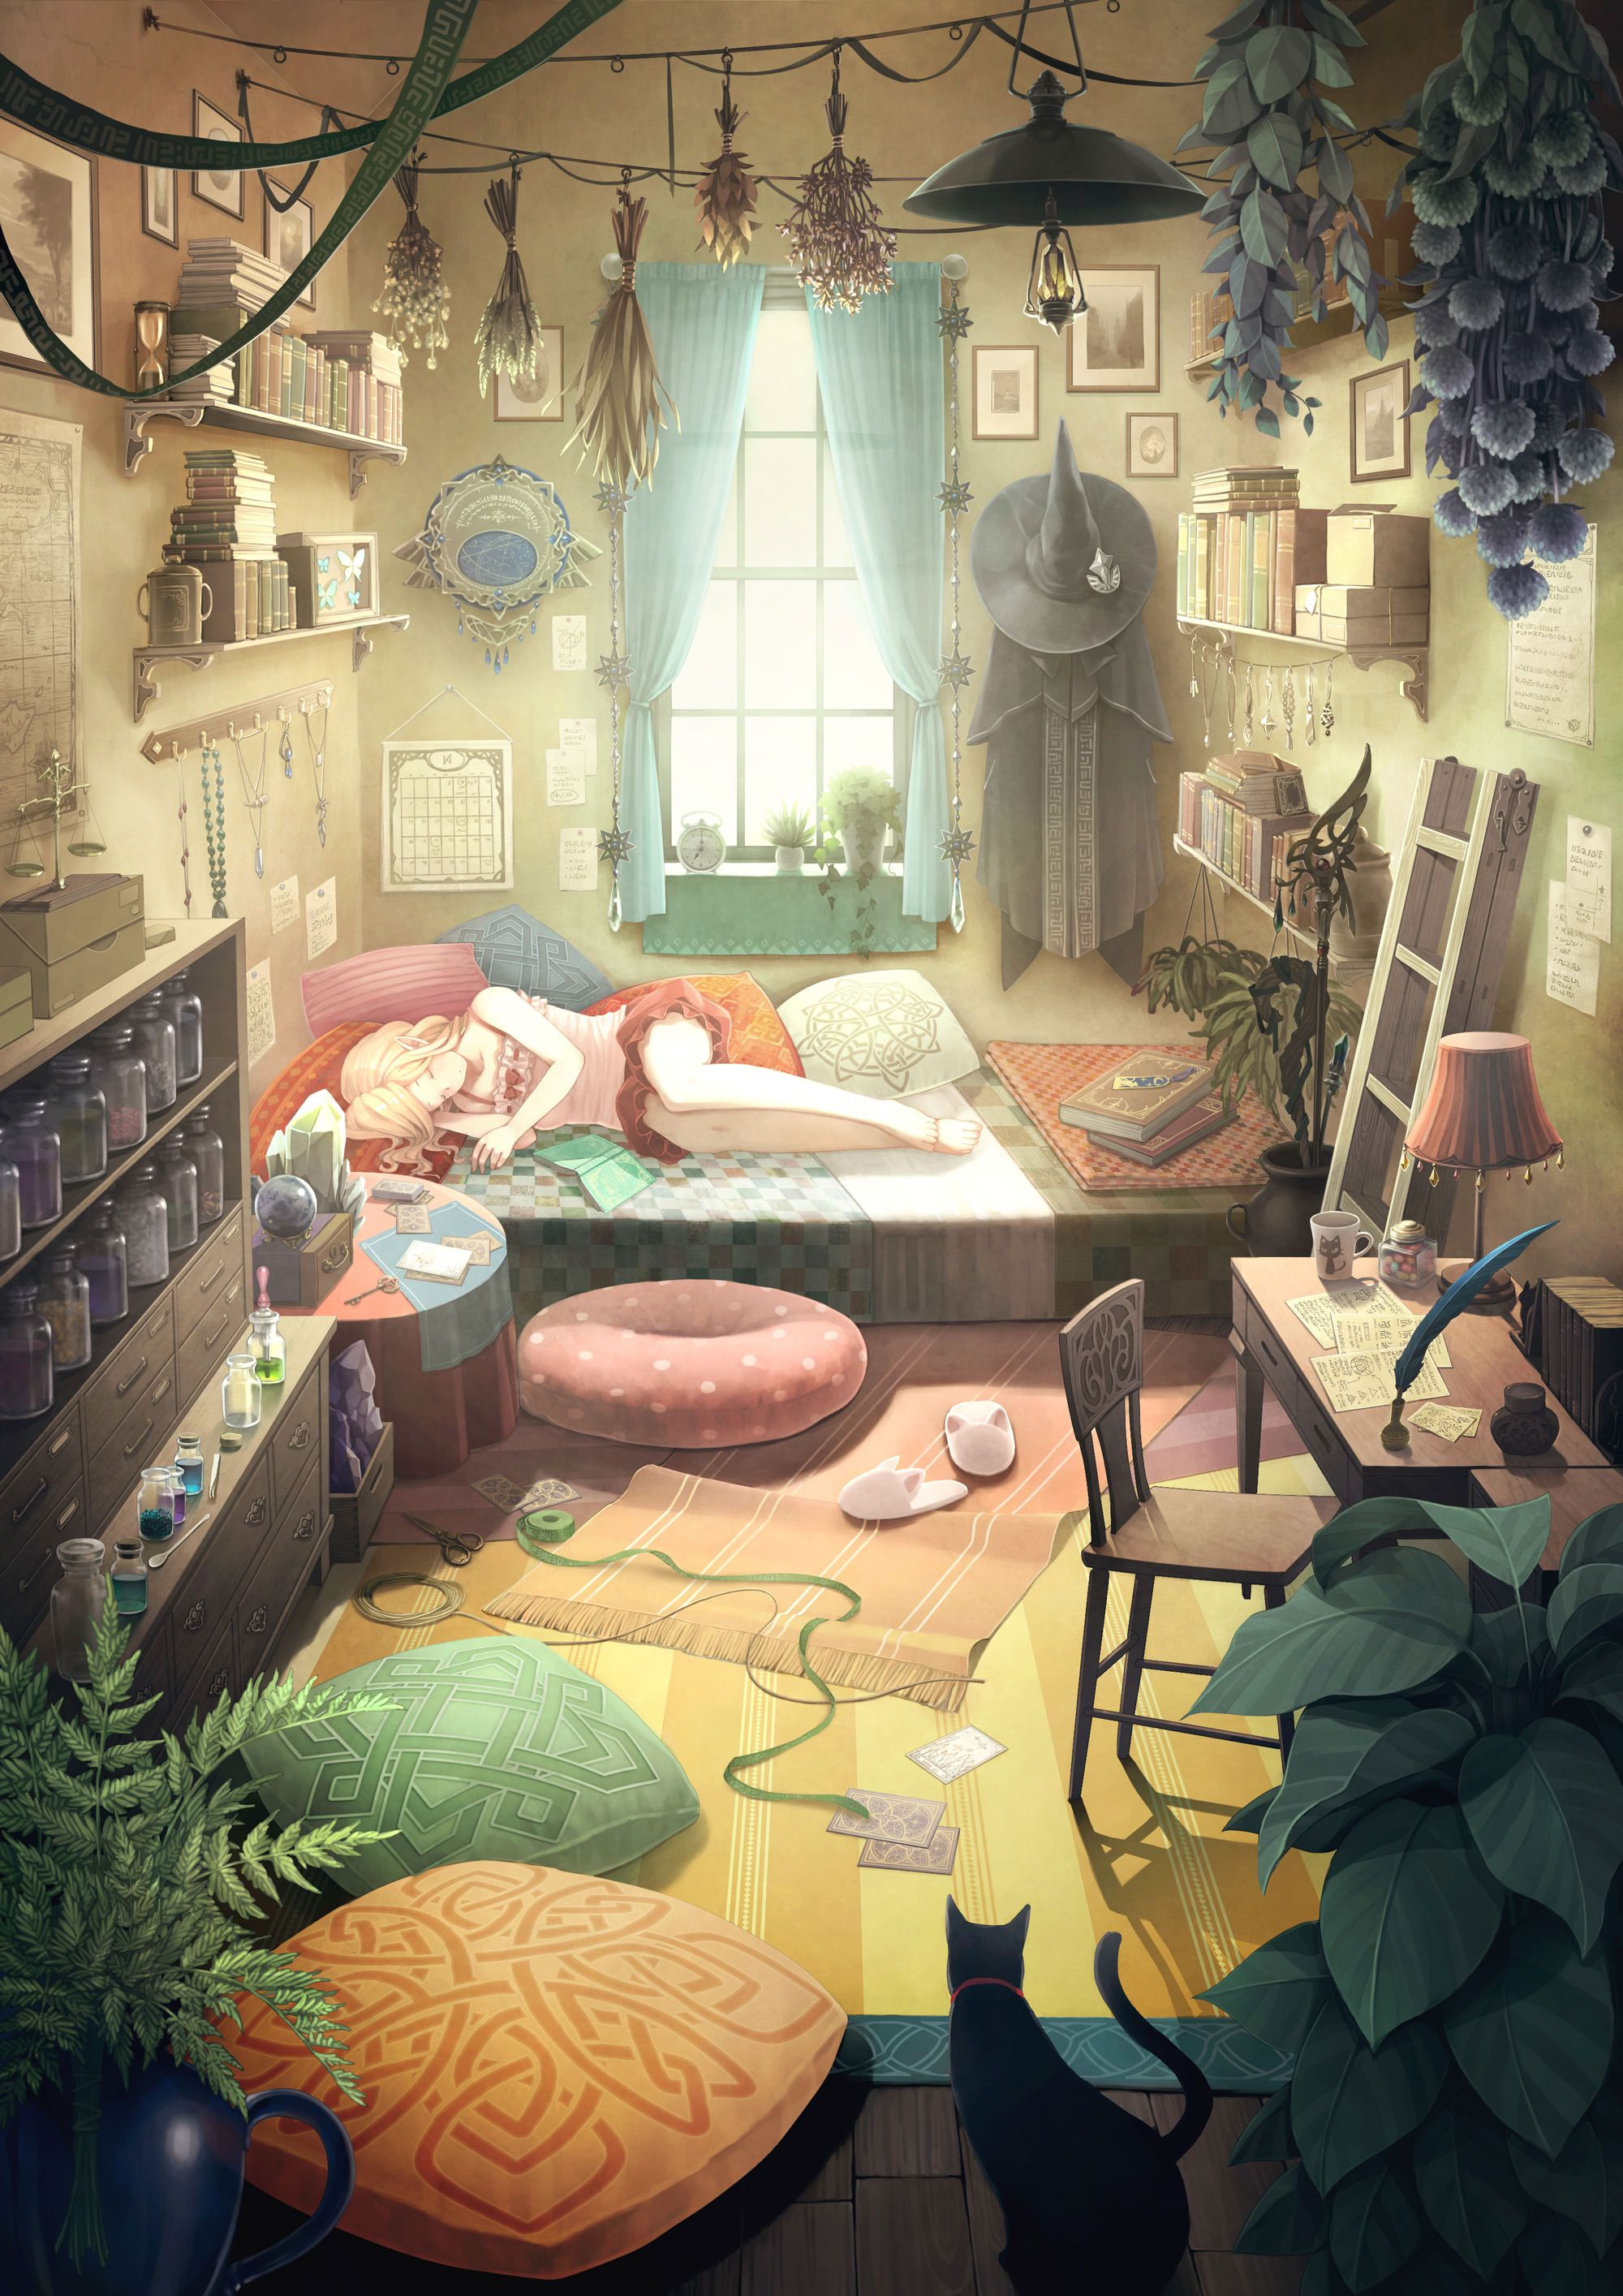 Bedroom Drawing: A Magic Student's Room [Original]